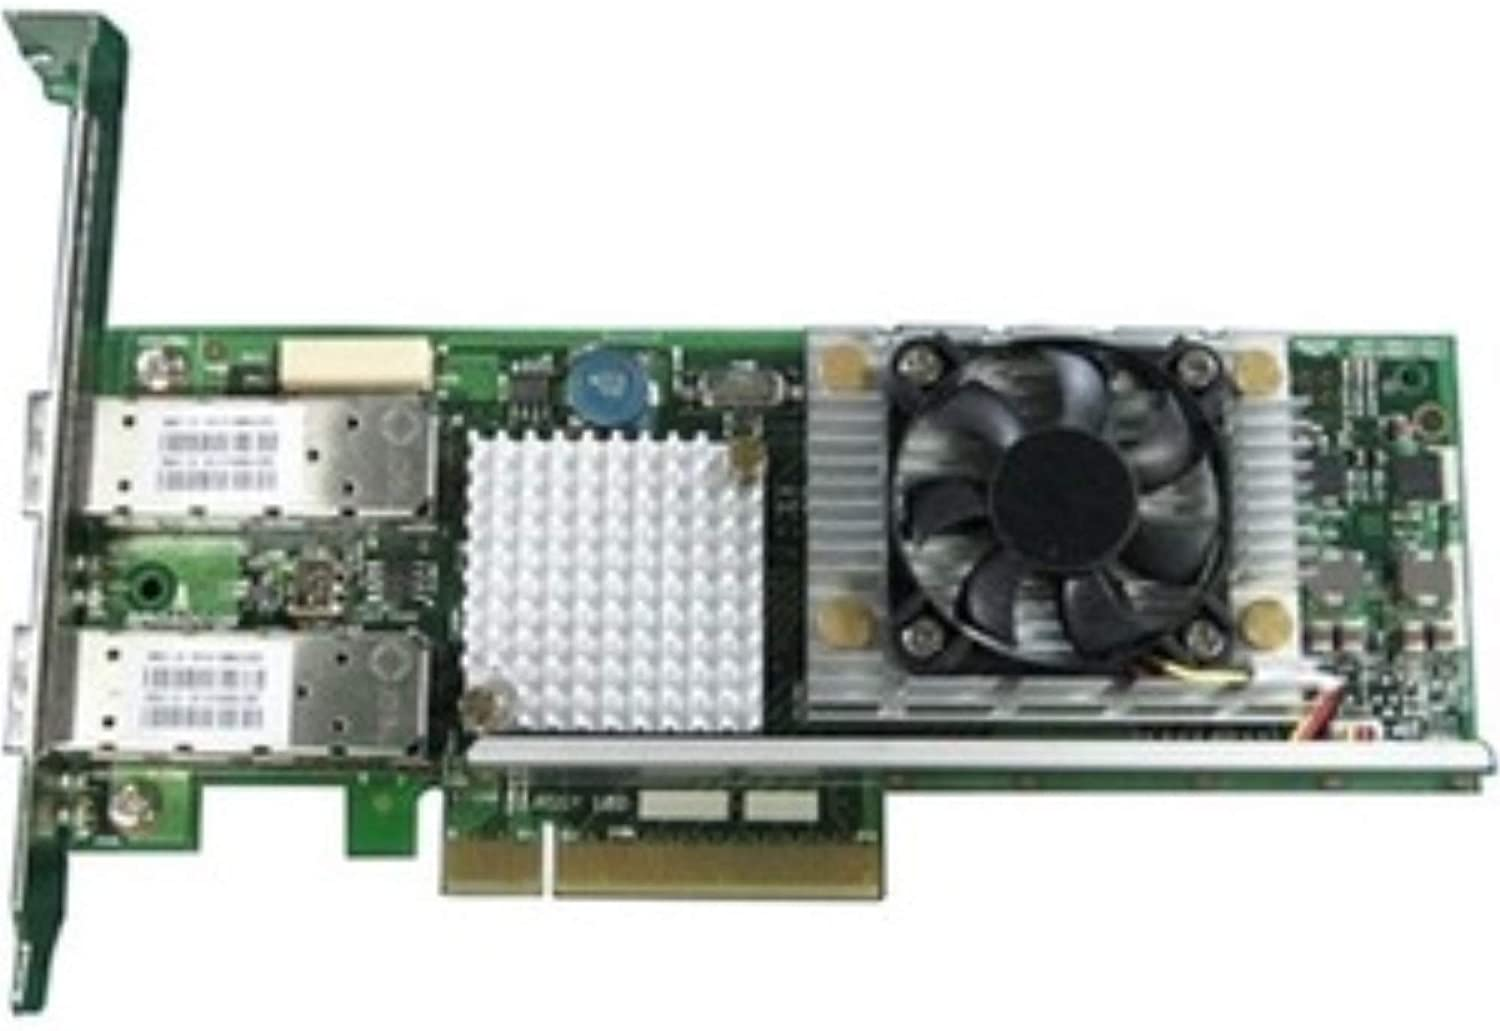 Dell Broadcom Netxtreme Ii 57711 10gbe - Pci Express X8-2 Port(s) - Optical Fiber